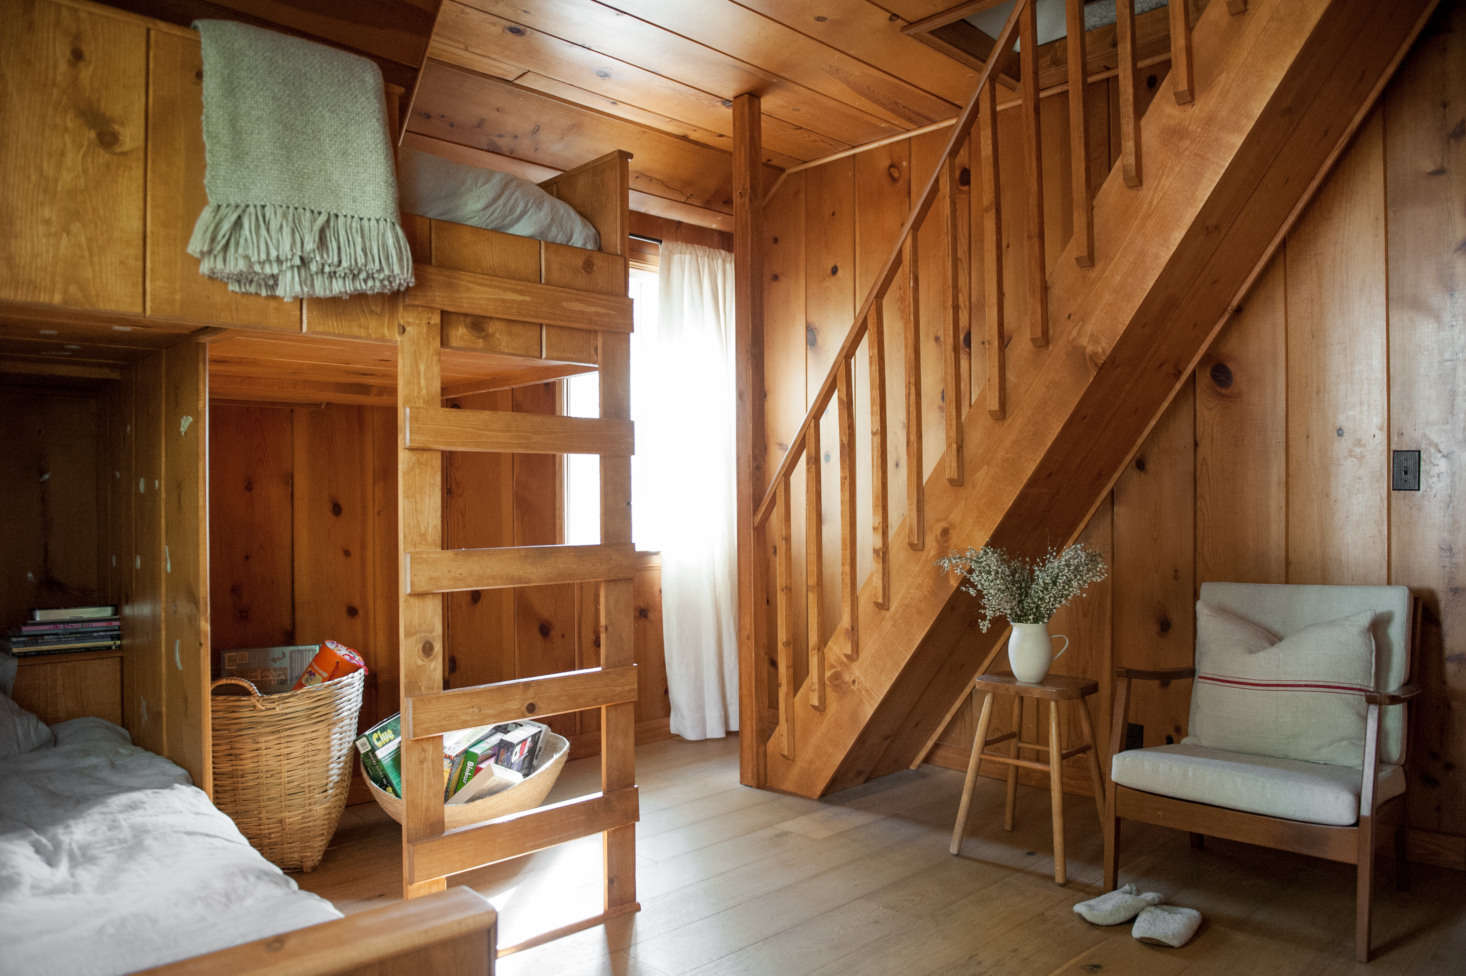 A pull-down ladder to the attic was replaced by wooden stairs.